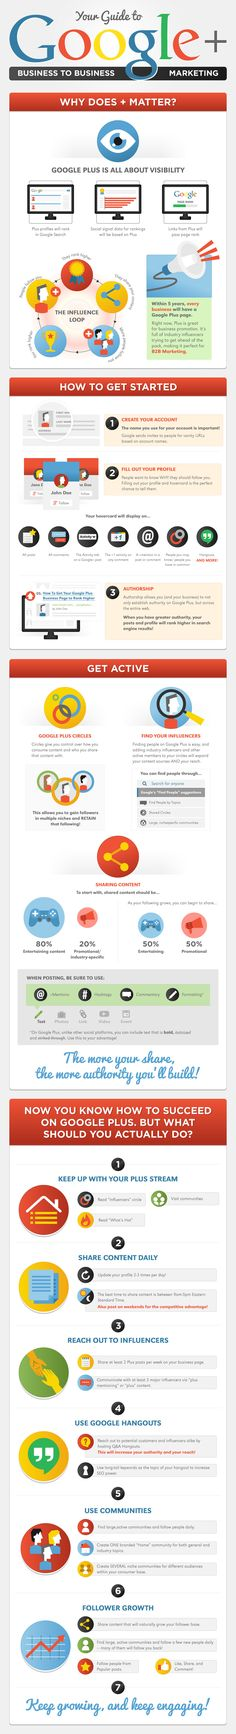 Your Guide to #GooglePlus Business to Business #Marketing - #infographic @mijo nick Information World  ツ